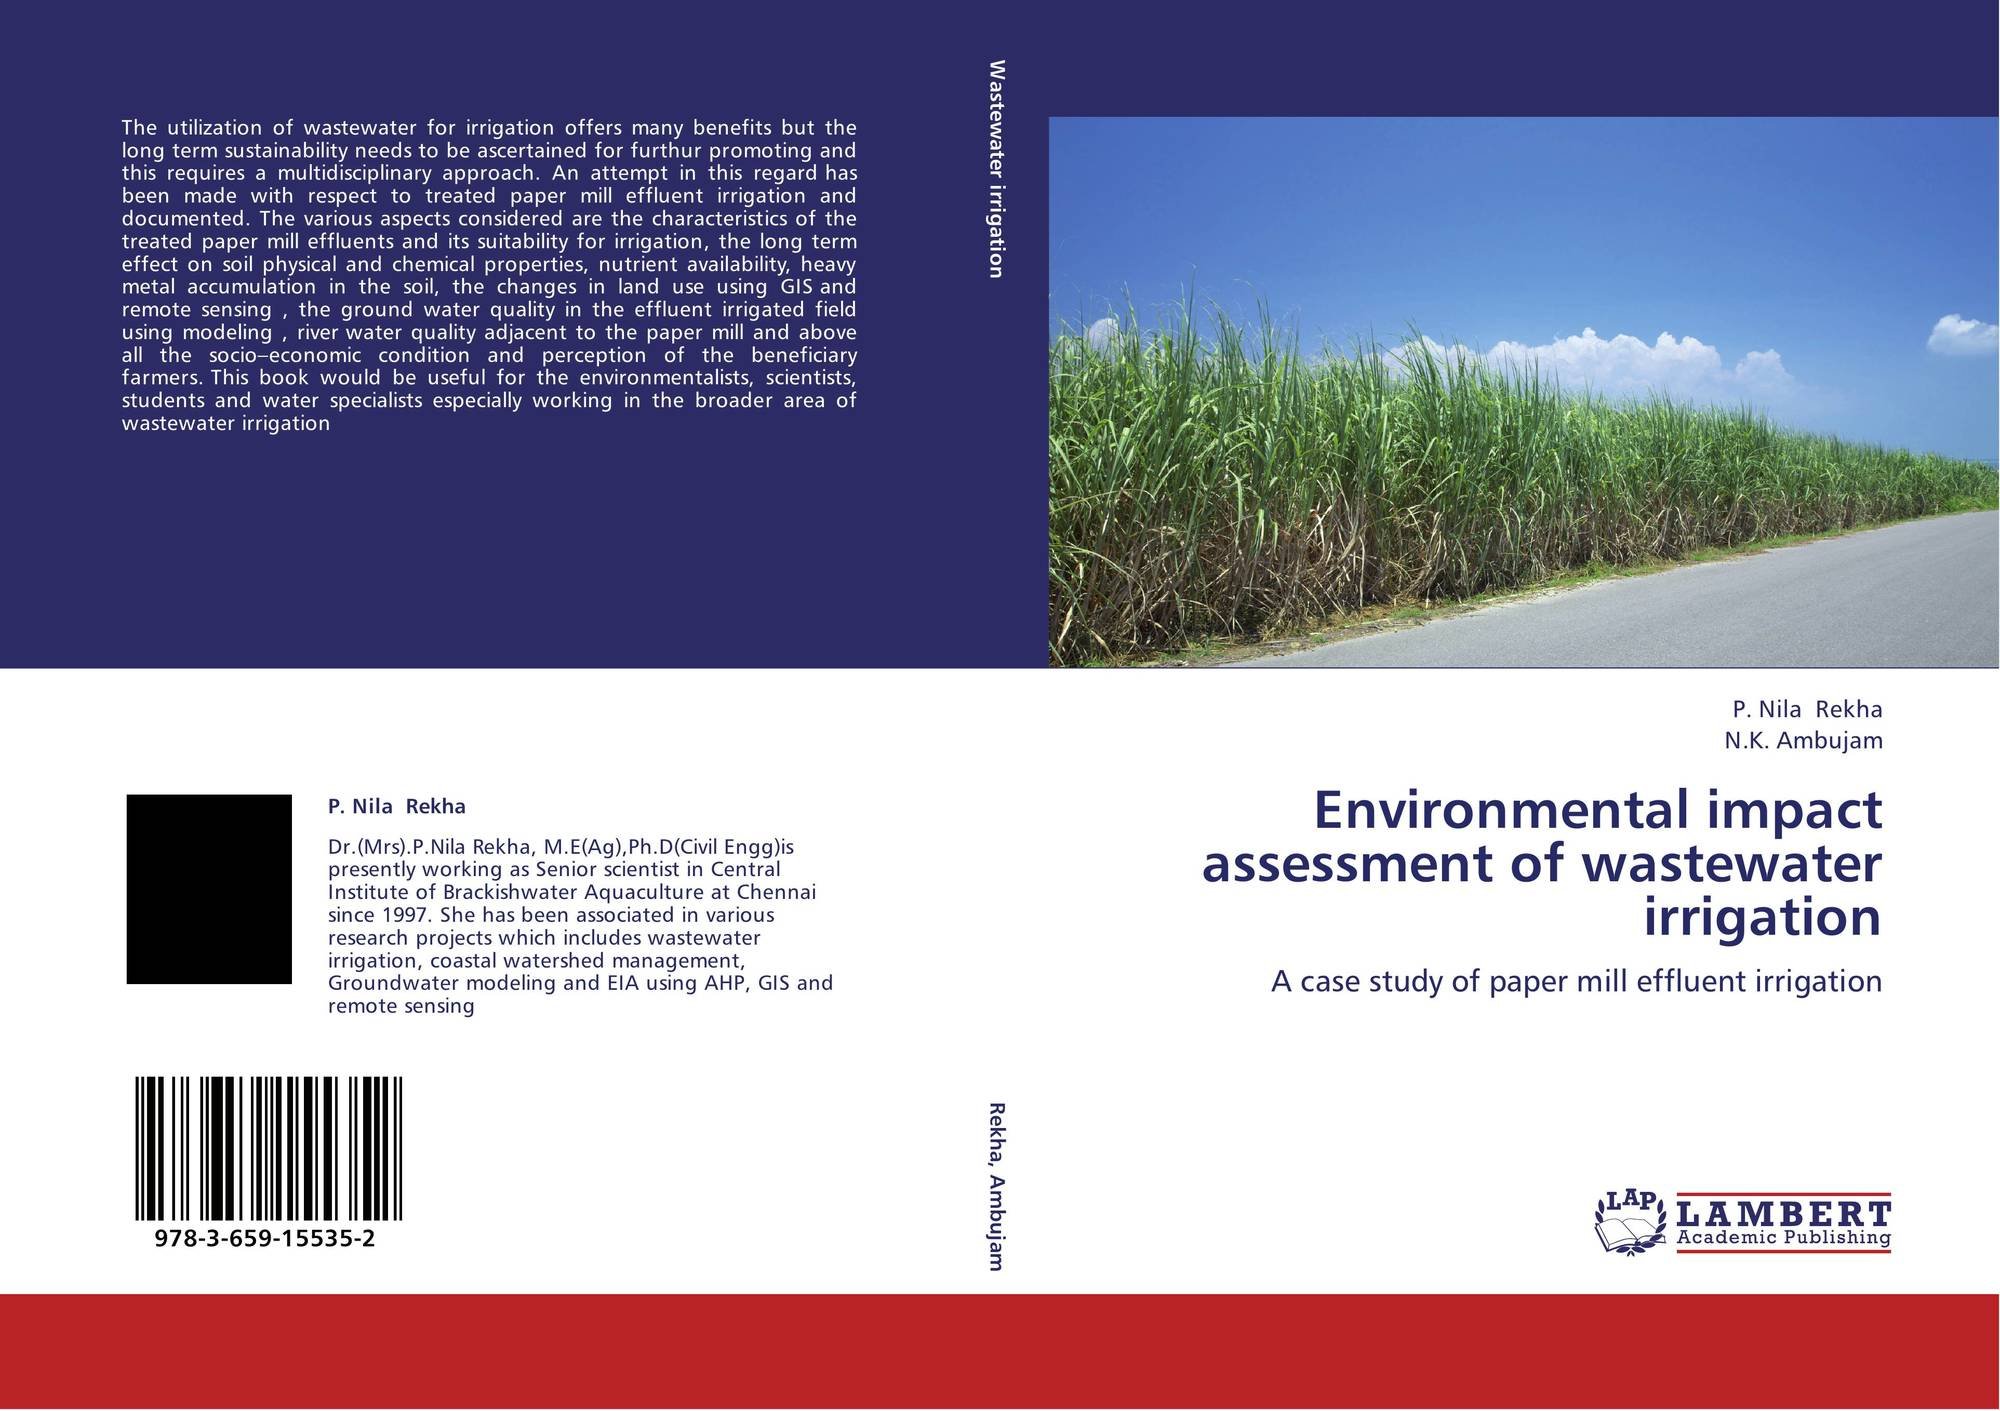 environmental impact assessment for groundwater environmental sciences essay Environmental impact assessment for groundwater management asit k biswas groundwater plays, and will continue to play a critical role in satisfying water requirements of most arid and semi-arid countries thus, sustainable groundwater development and preservation of groundwater quality should.